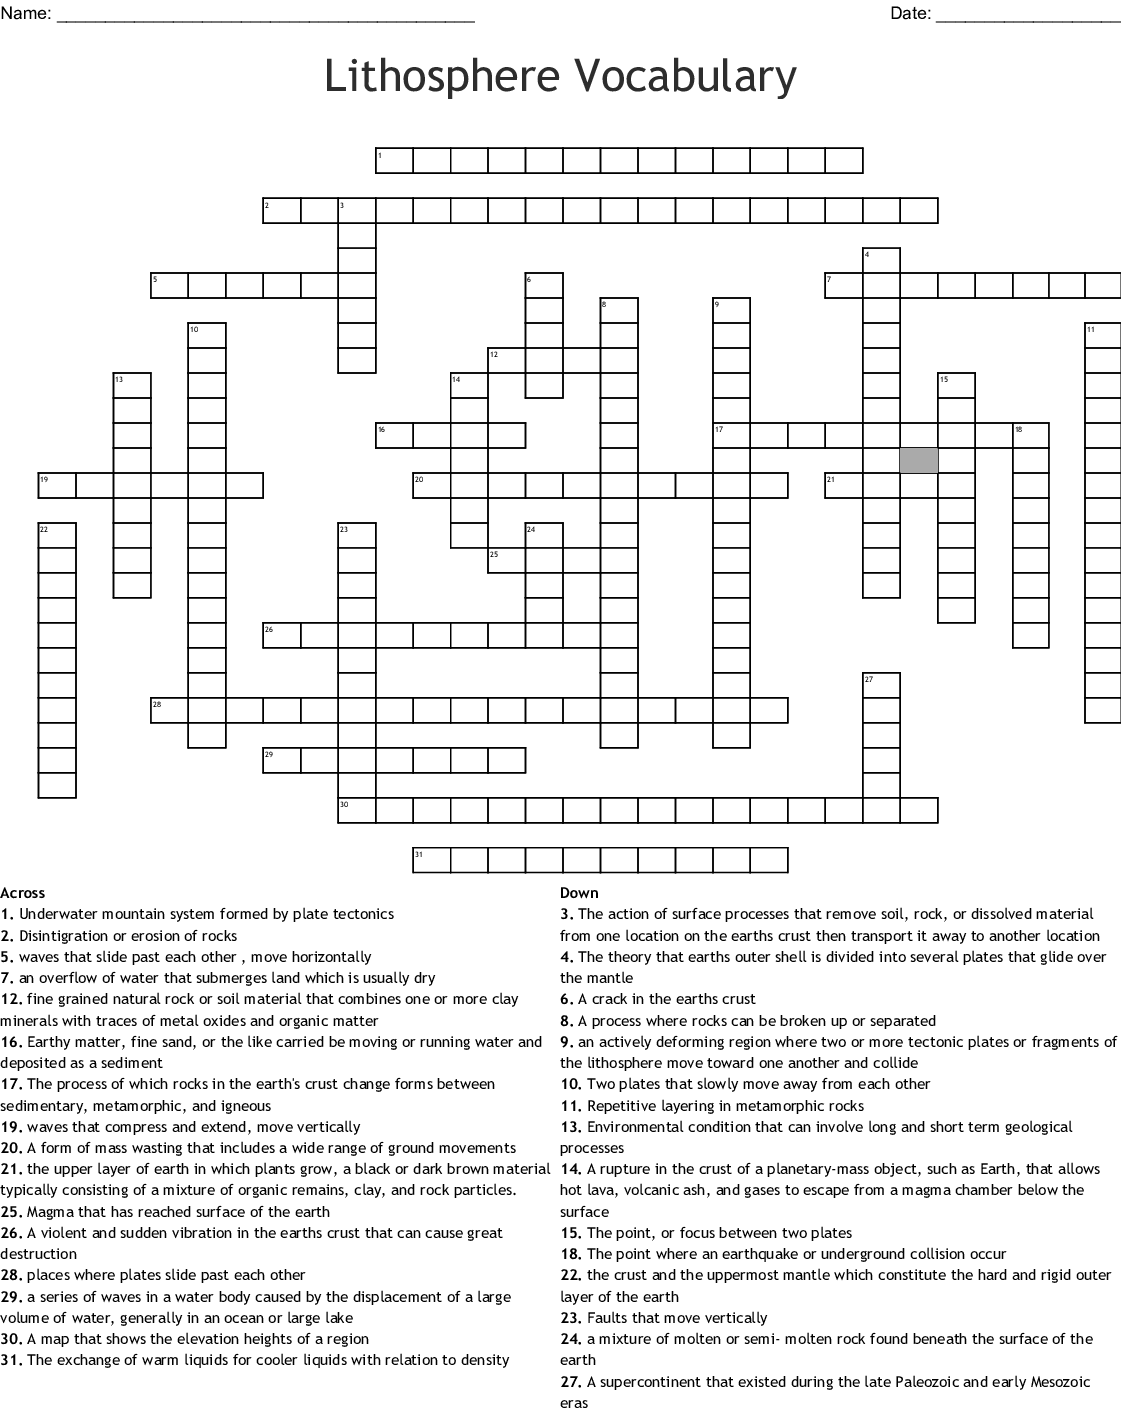 Lithosphere Vocabulary Crossword